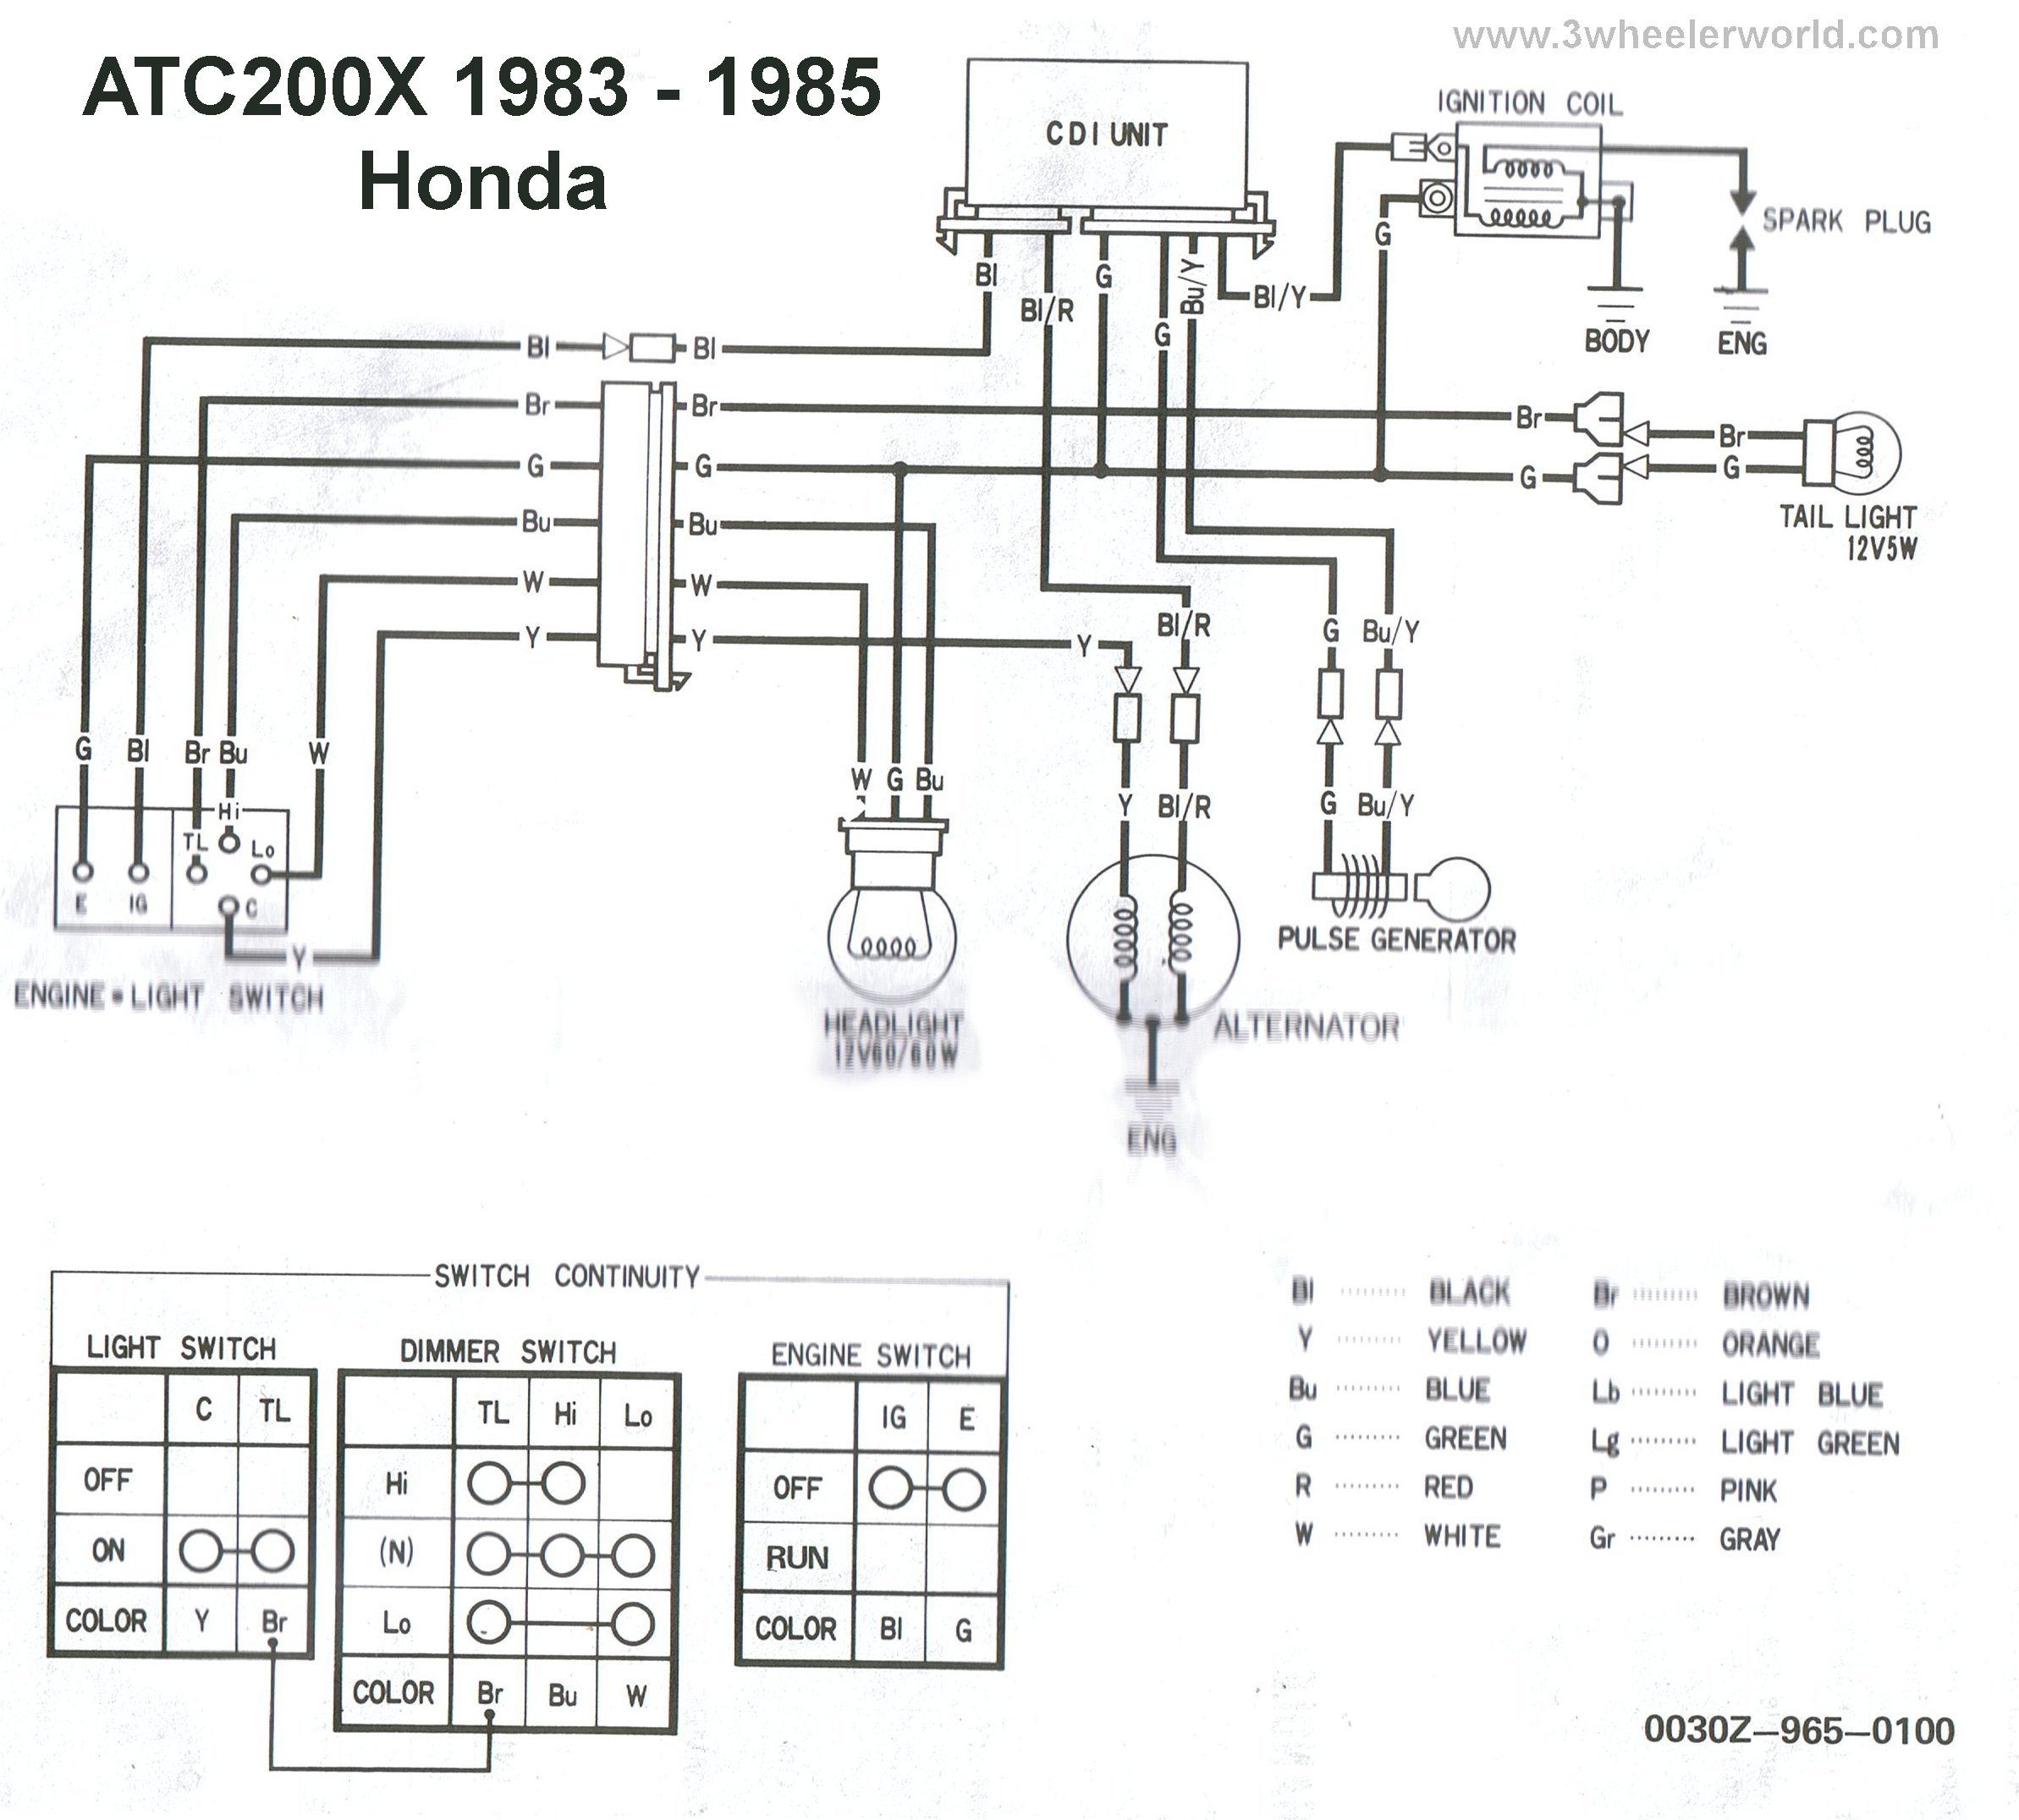 ATC200Xx83Thru85HM 3 wheeler world tech help honda wiring diagrams 1983 honda atc 200 wiring diagram at webbmarketing.co